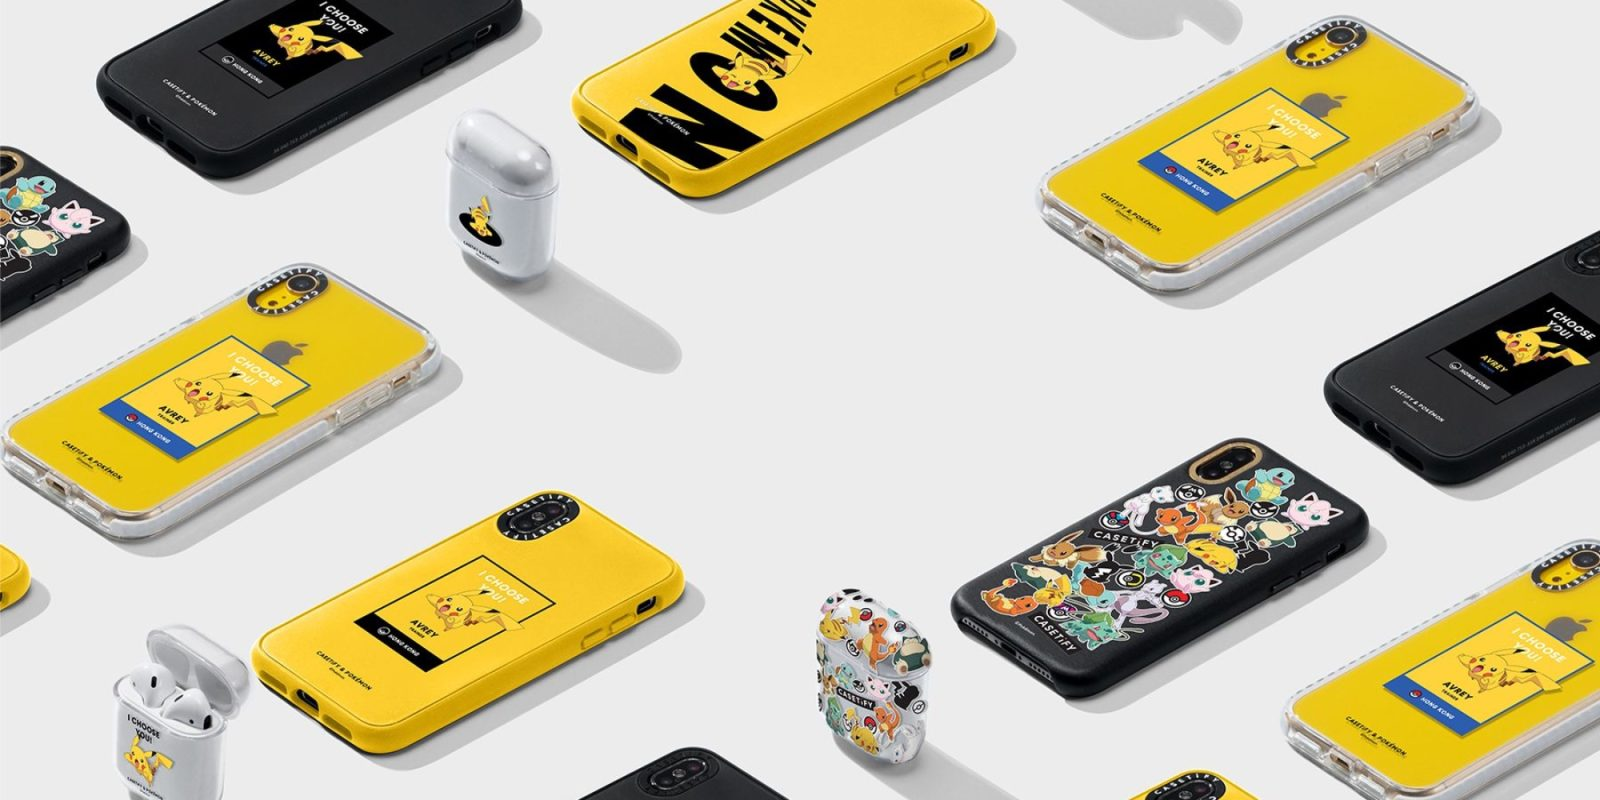 new style fcd9c 49657 CASETiFY Pokémon iPhone Cases debut with 151 styles - 9to5Toys